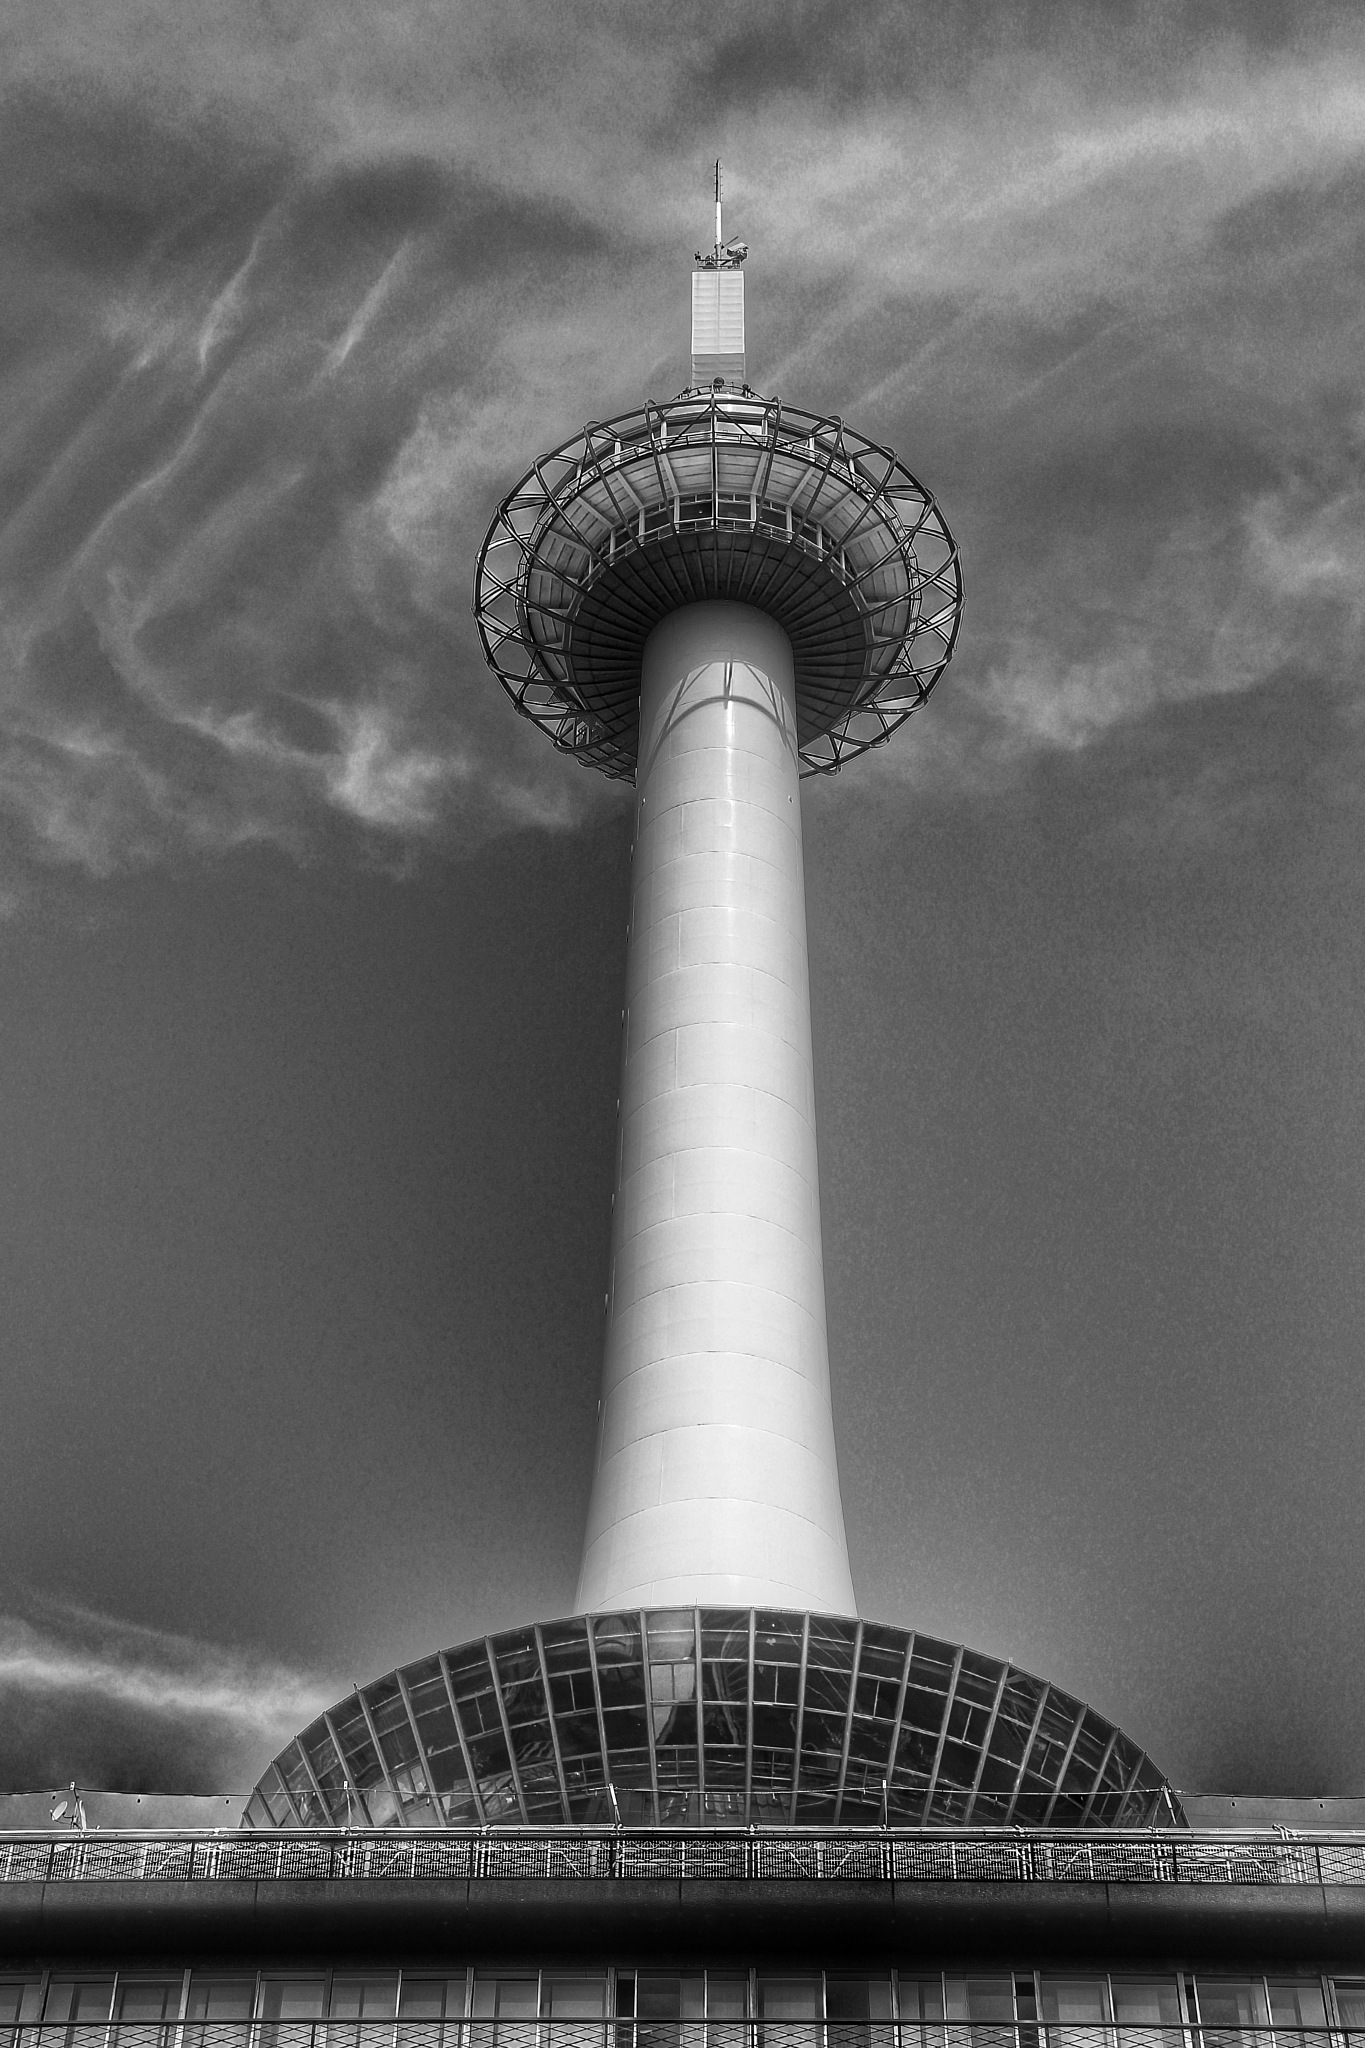 Kyoto tower by Armed-with-a-smile